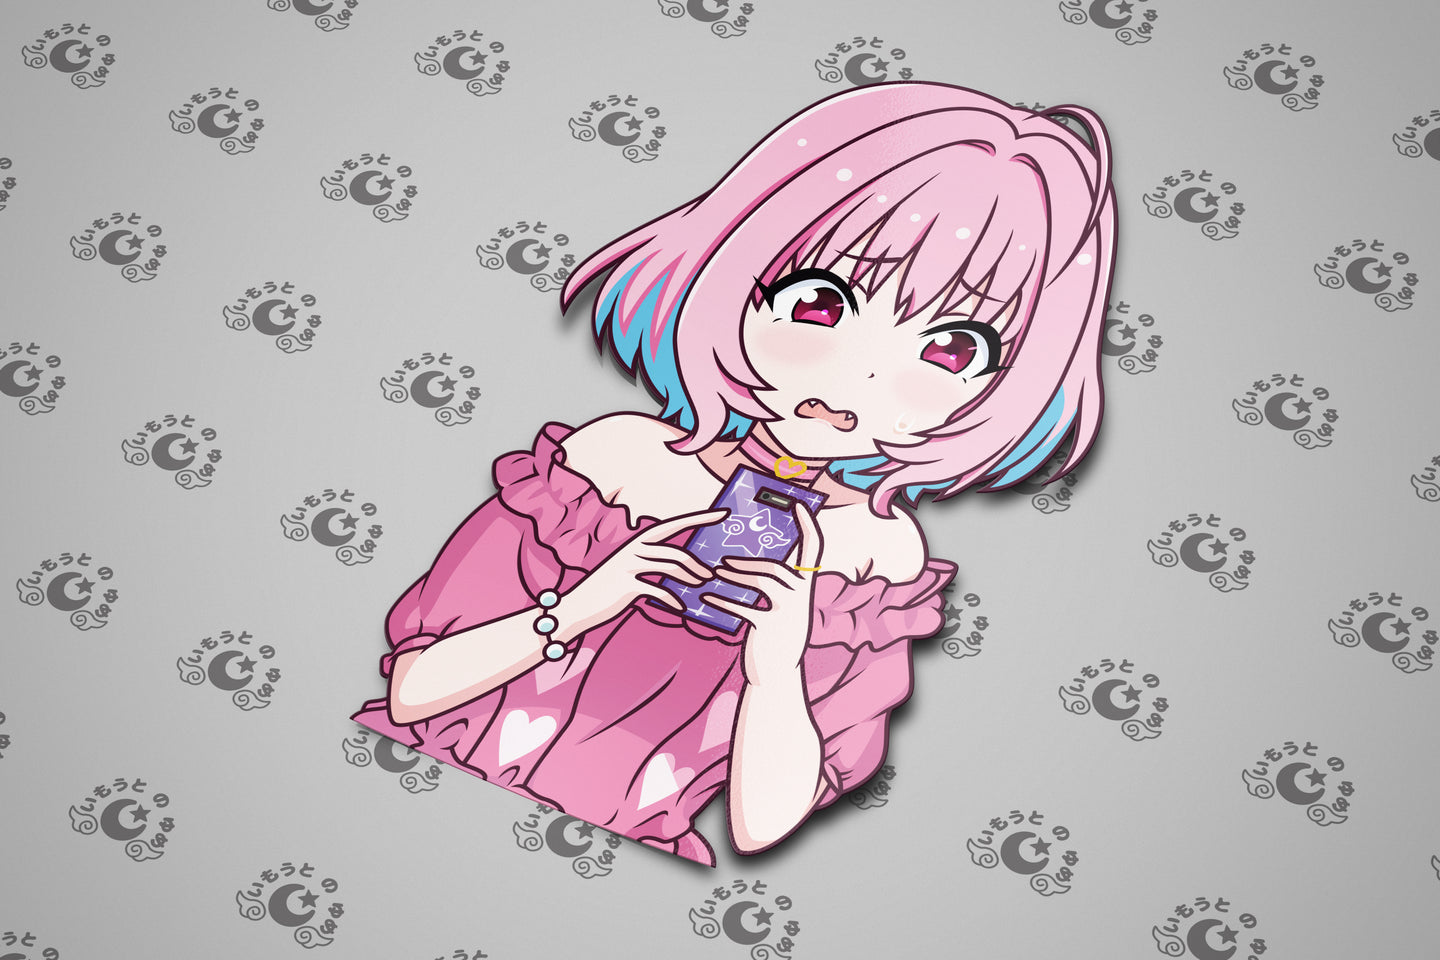 Worried Riamu